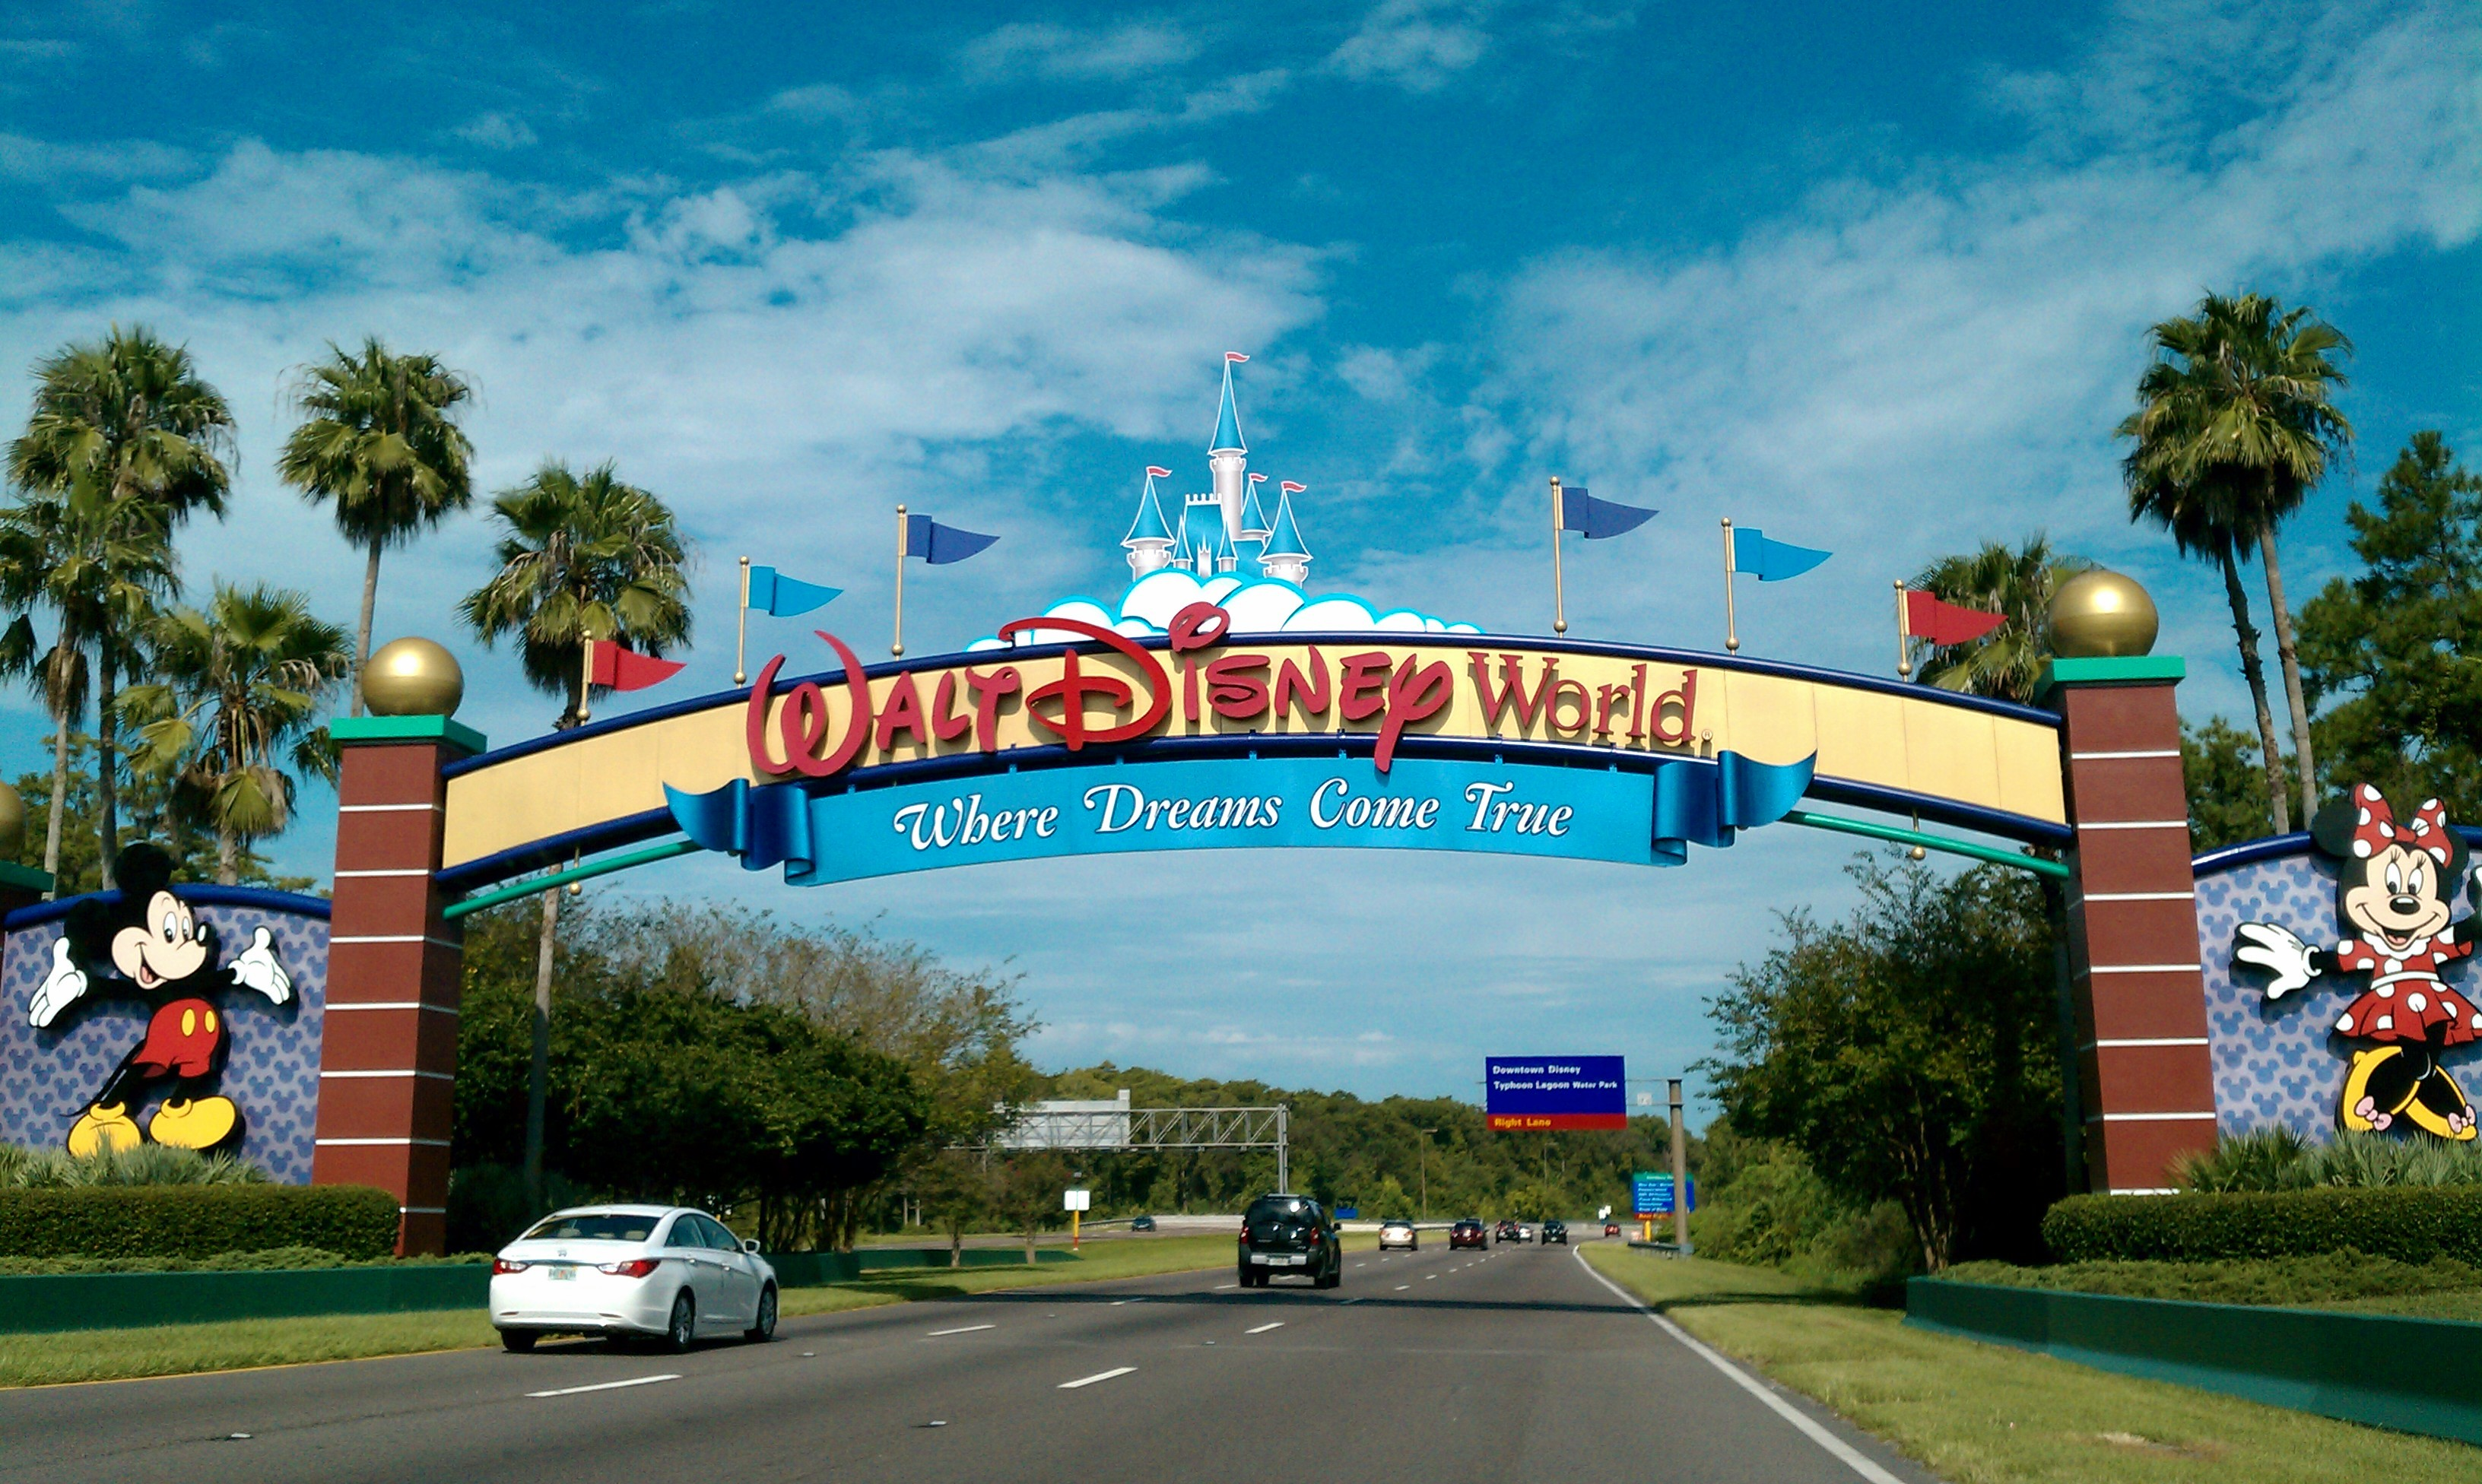 Disney World's next big hotel might be built on land previously